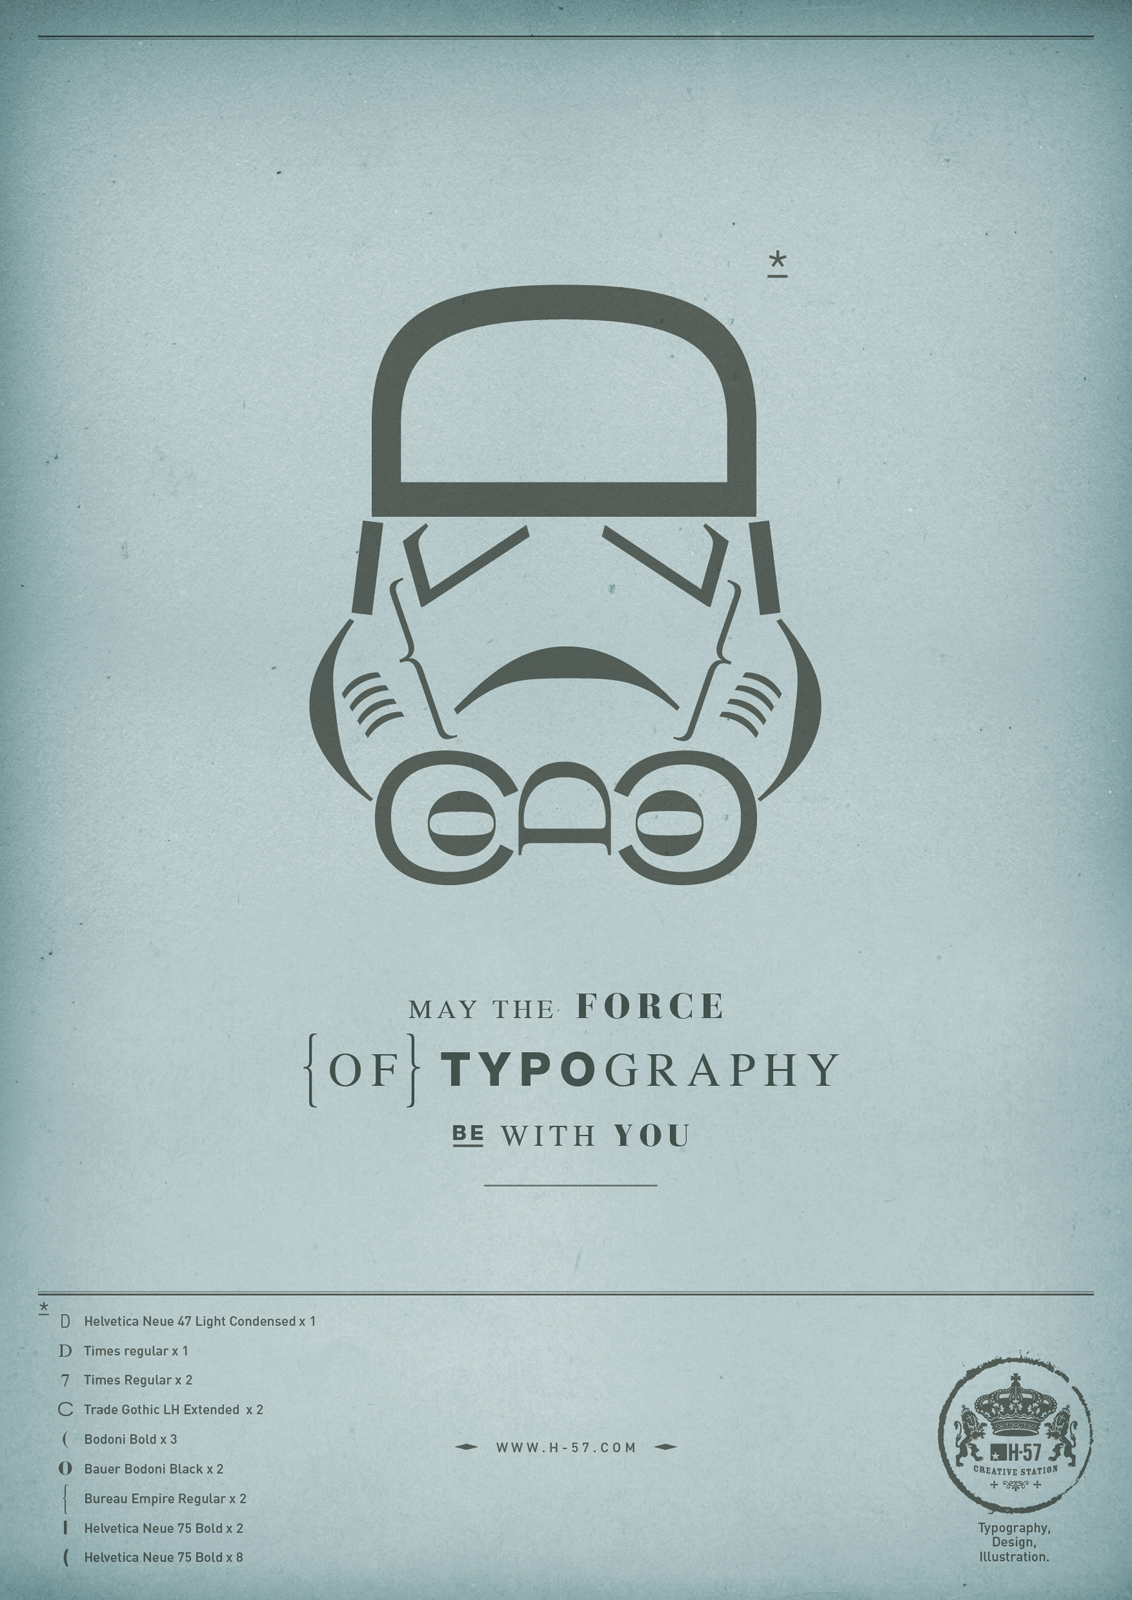 kiss my black ads may the force of typography be with you